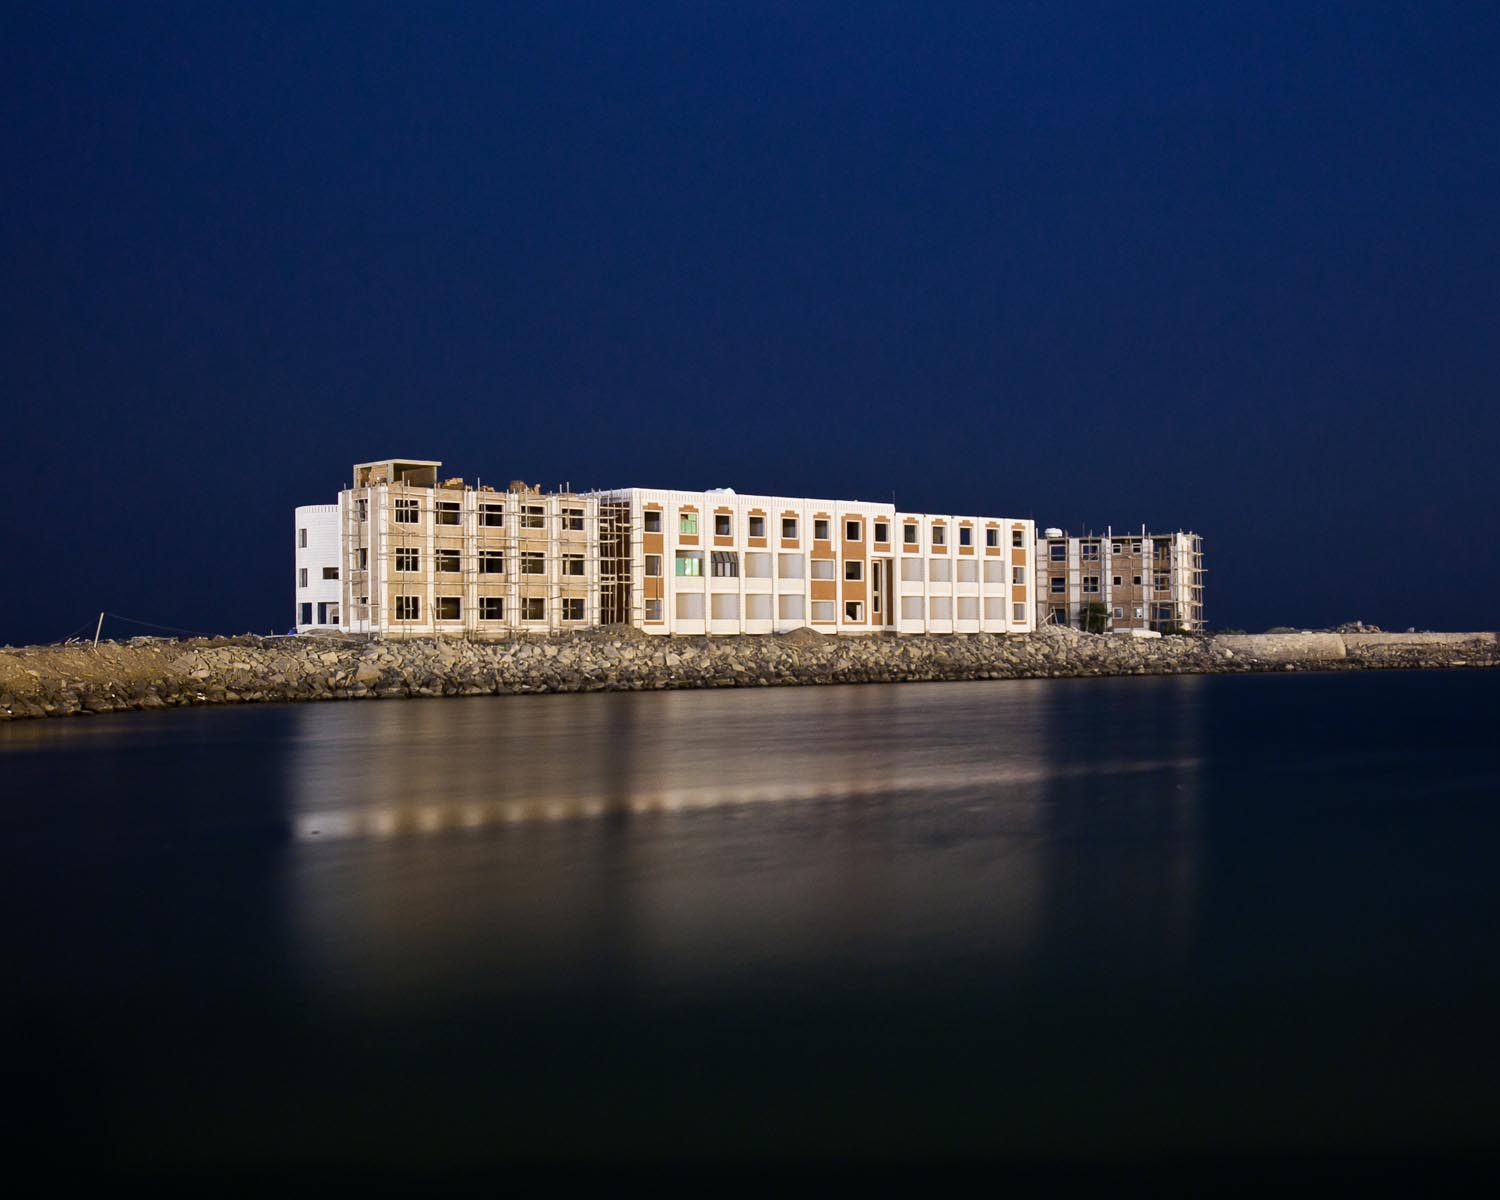 The construction of a hotel on the coast of Hodeidah, a large port on the Red Sea. August 2010.